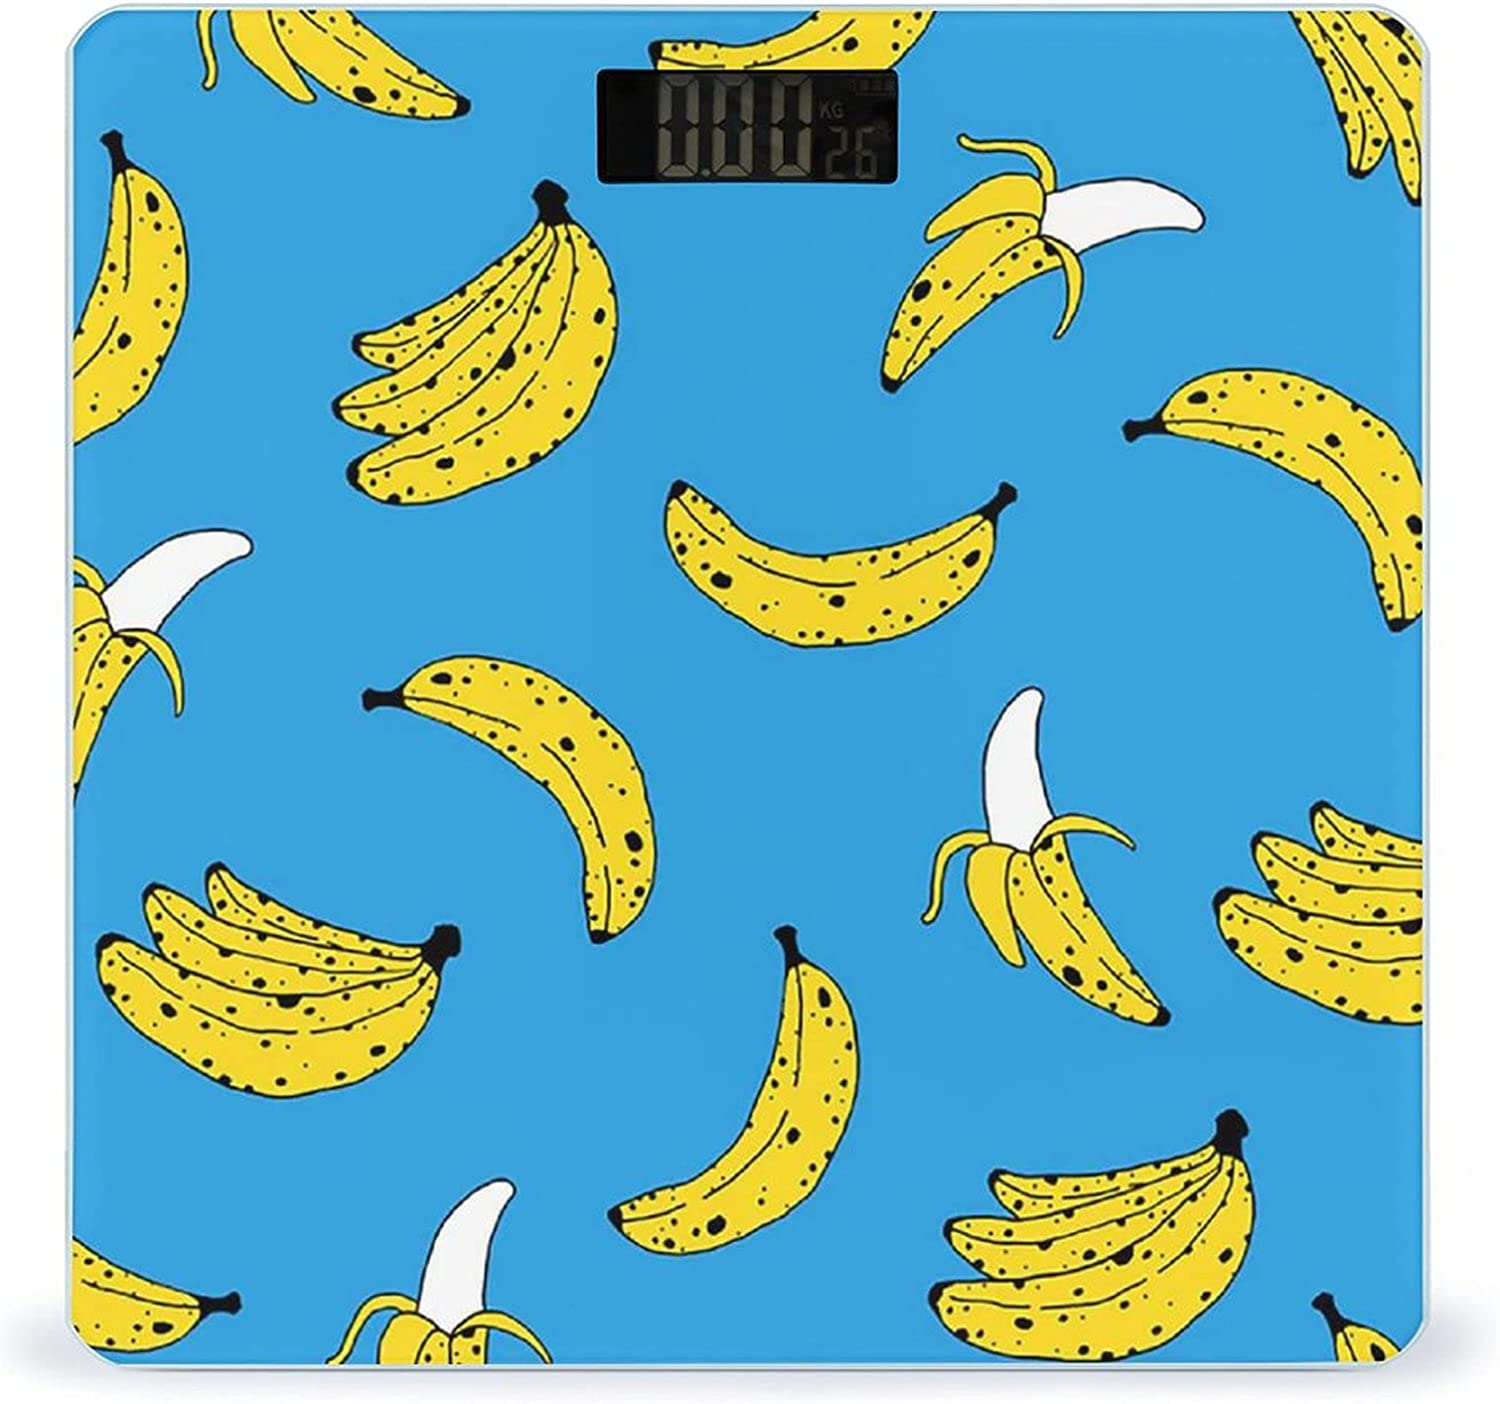 Banana Print Highly Accurate Smart Fitness Scale Digital Weight Atlanta Overseas parallel import regular item Mall